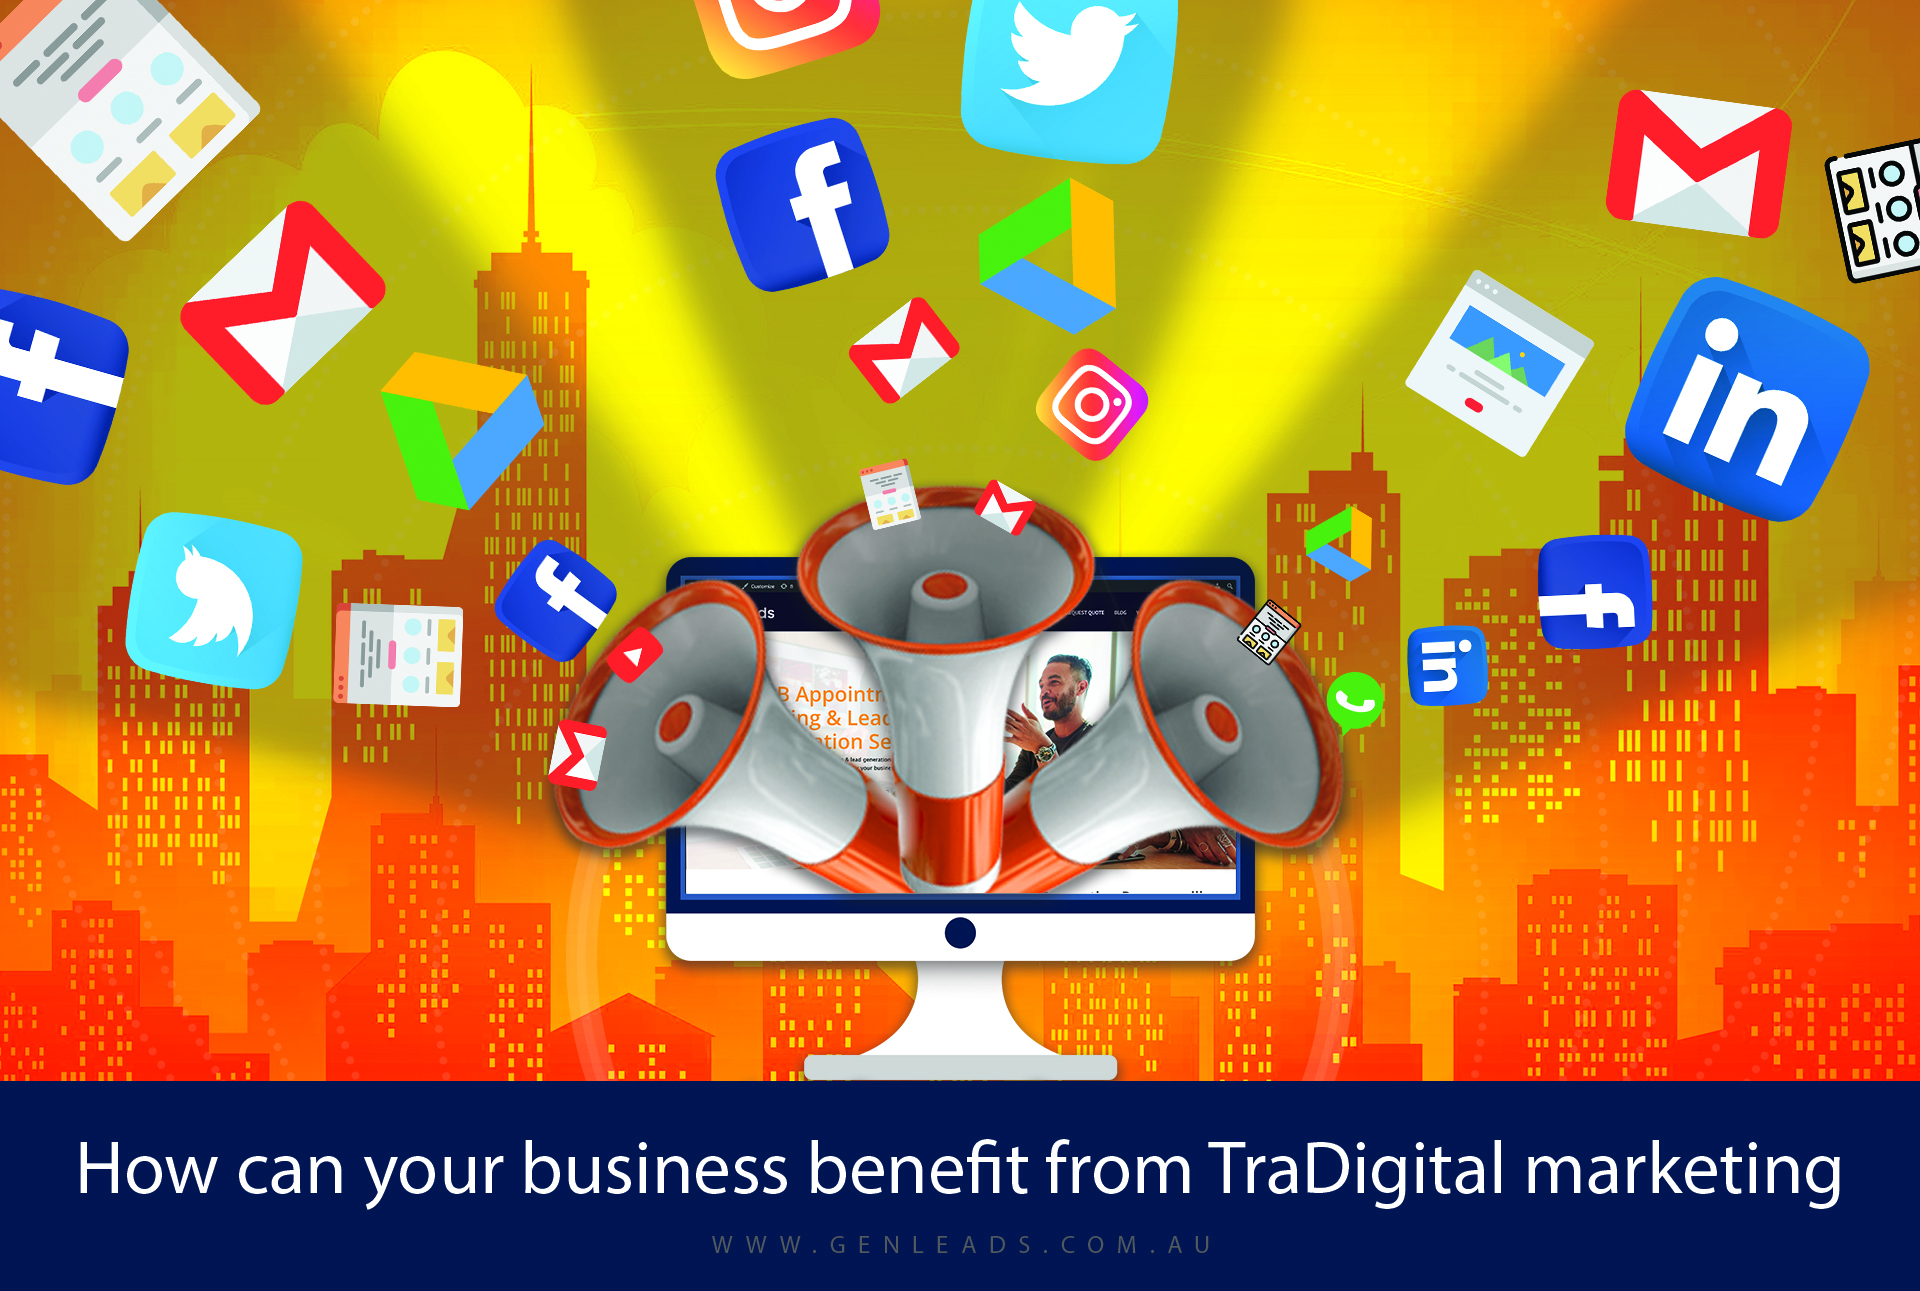 How Can Your Business Benefit From TraDigital Marketing?